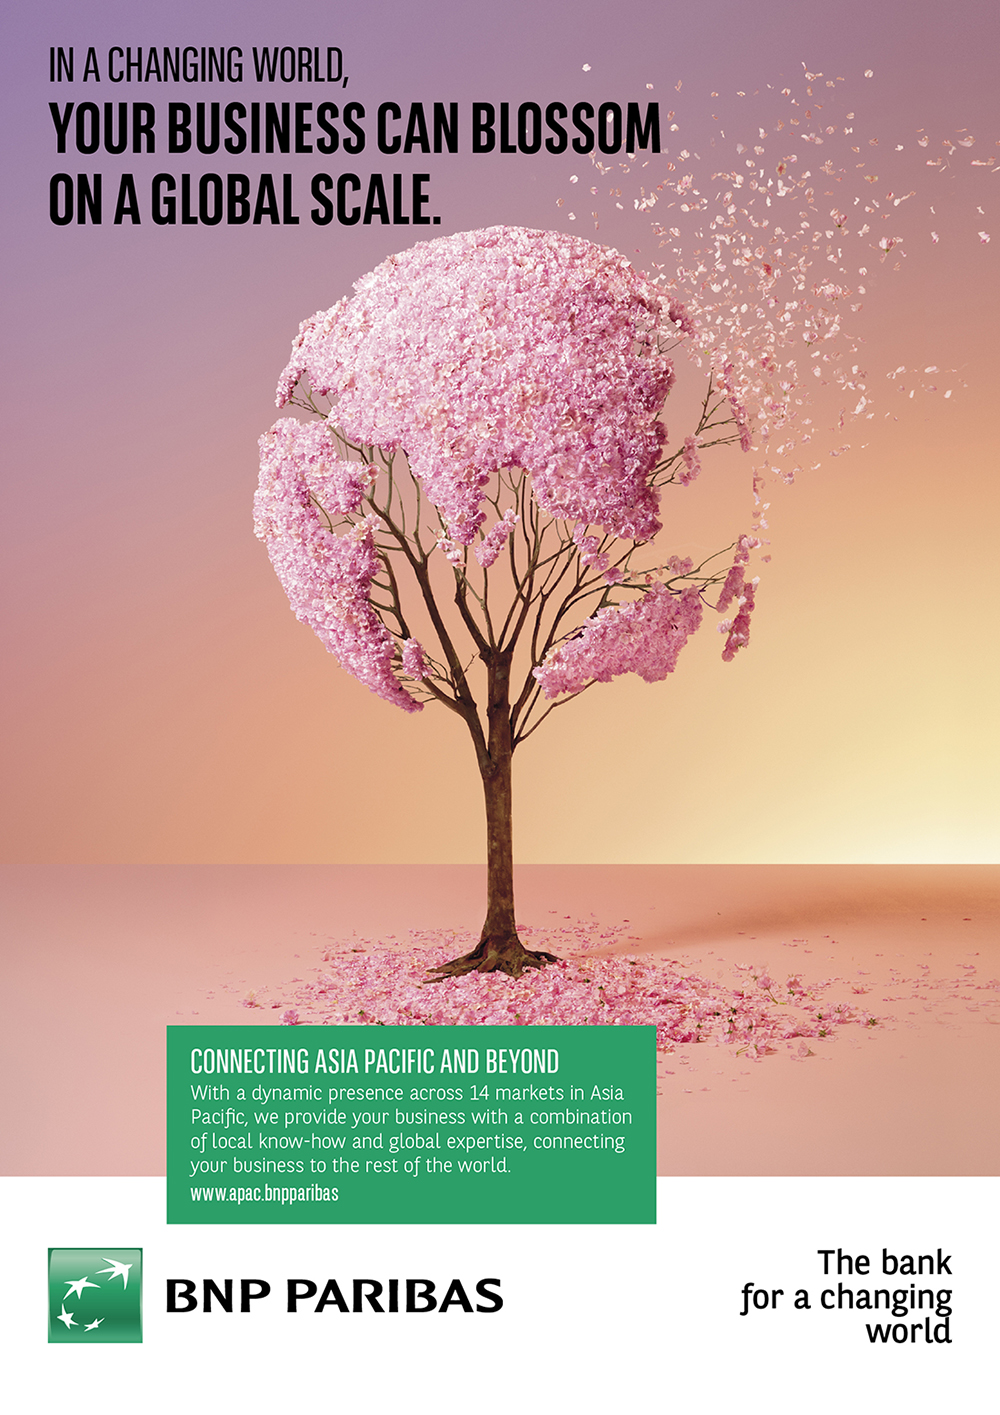 bnp-paribas-publicite-marketing-banque-in-a-changing-world-la-banque-un-monde-qui-change-2015-publicis-conseil-7